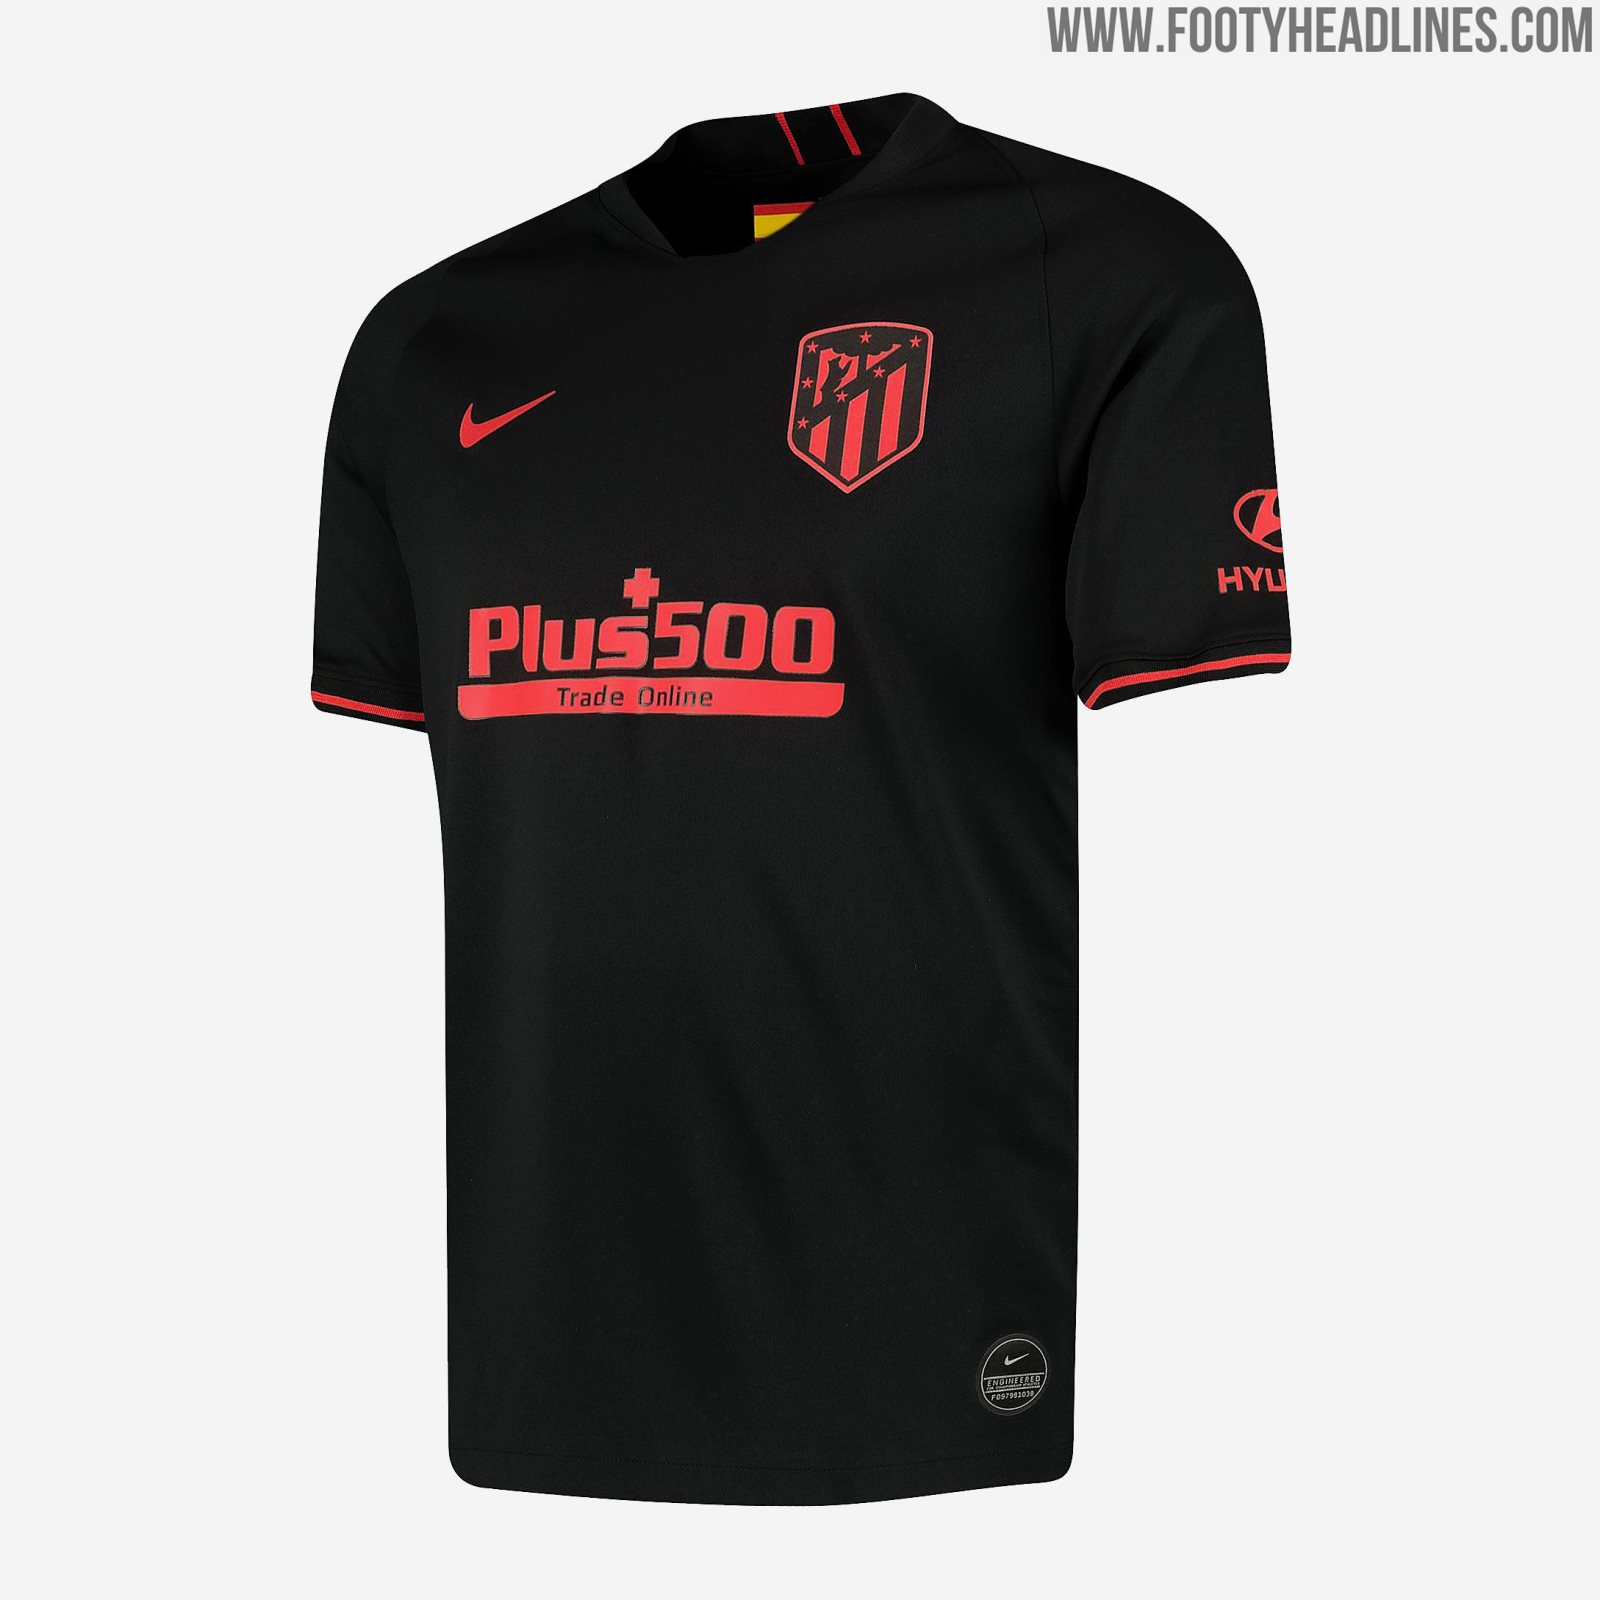 Atlético Madrid 19-20 Away Kit Released - Footy Headlines